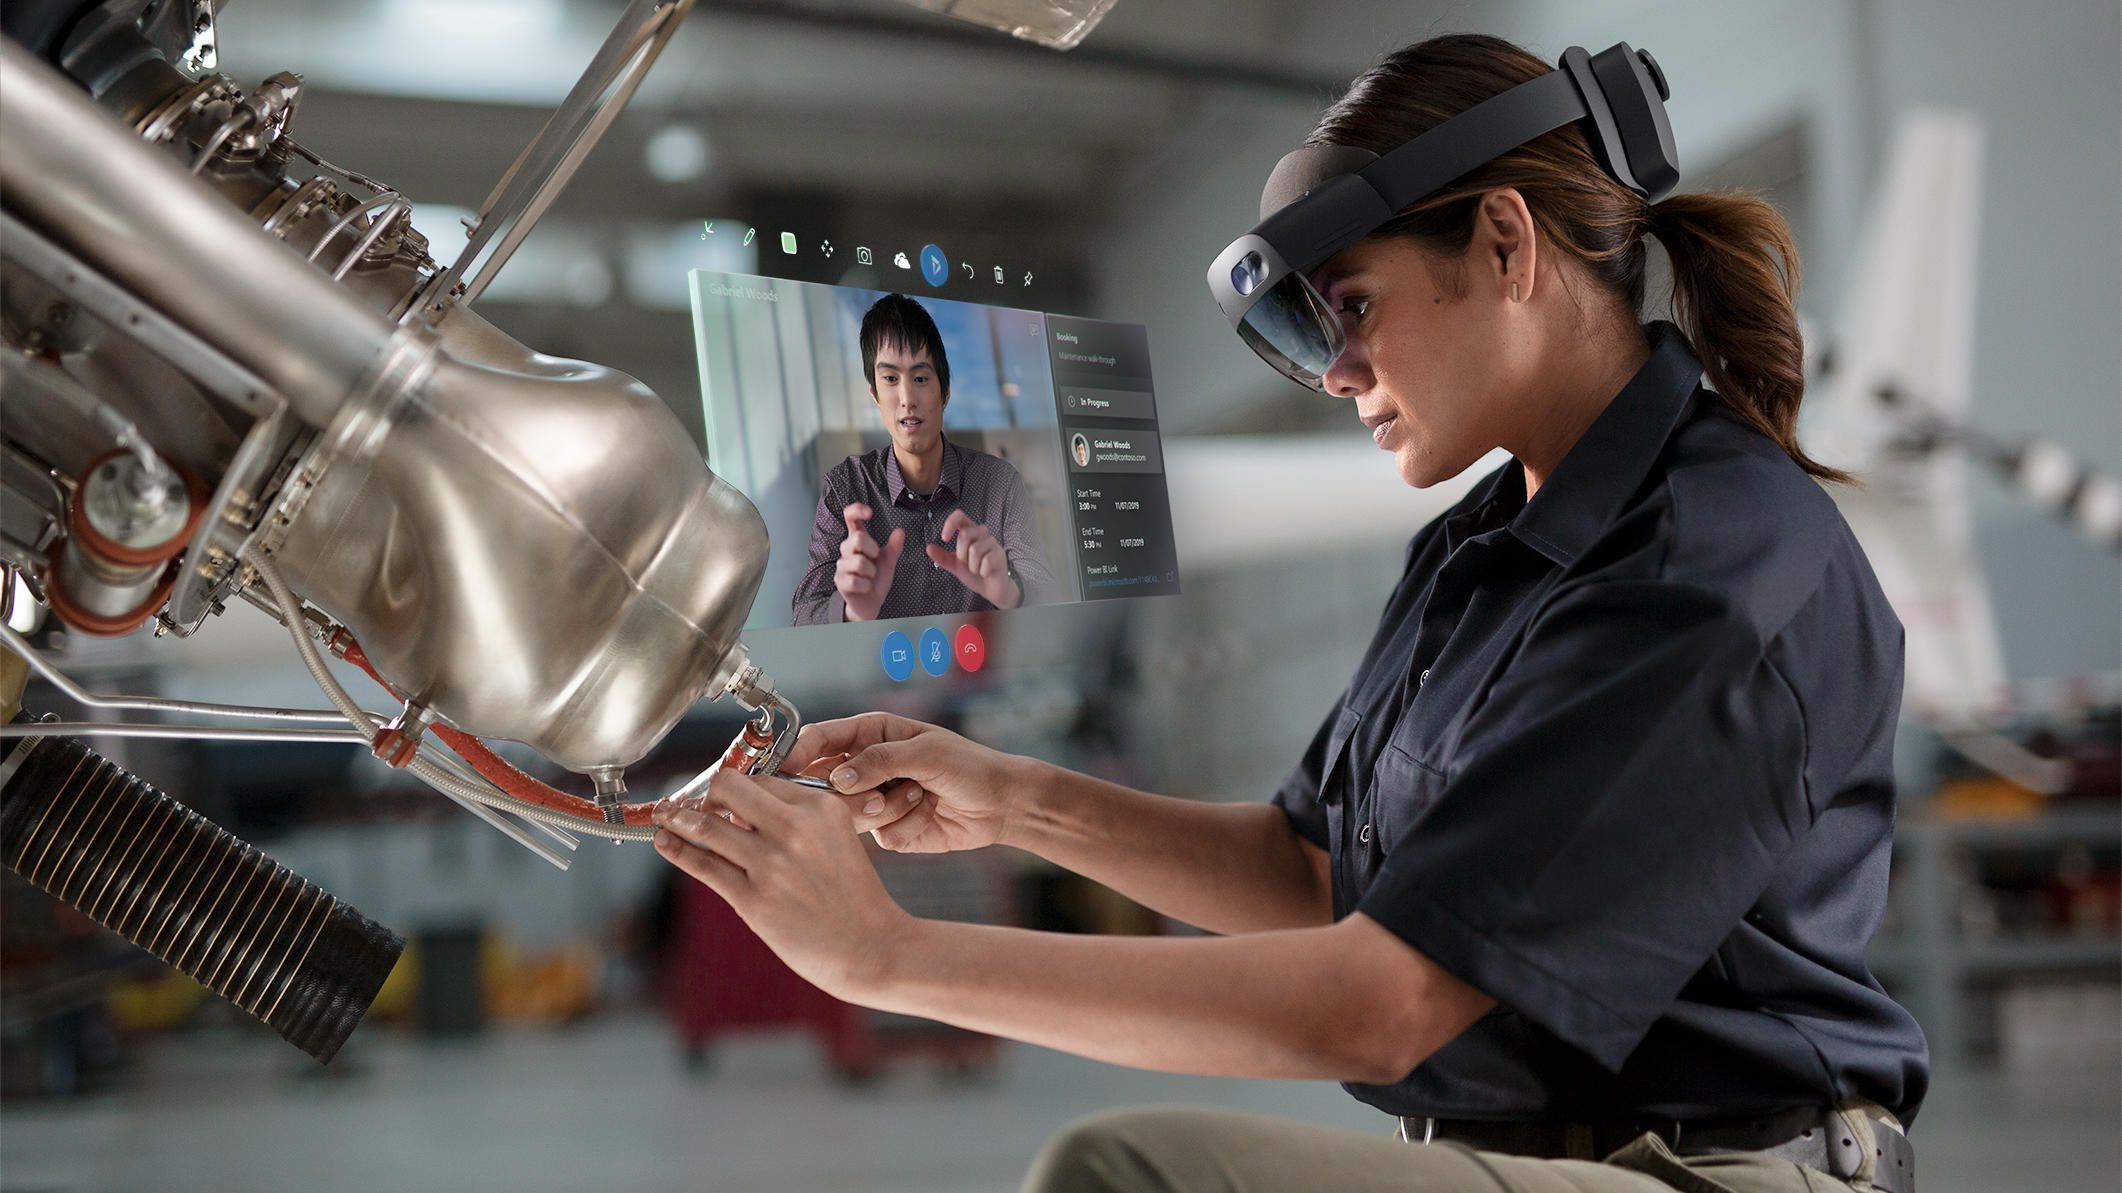 The Microsoft HoloLens 2 at work.